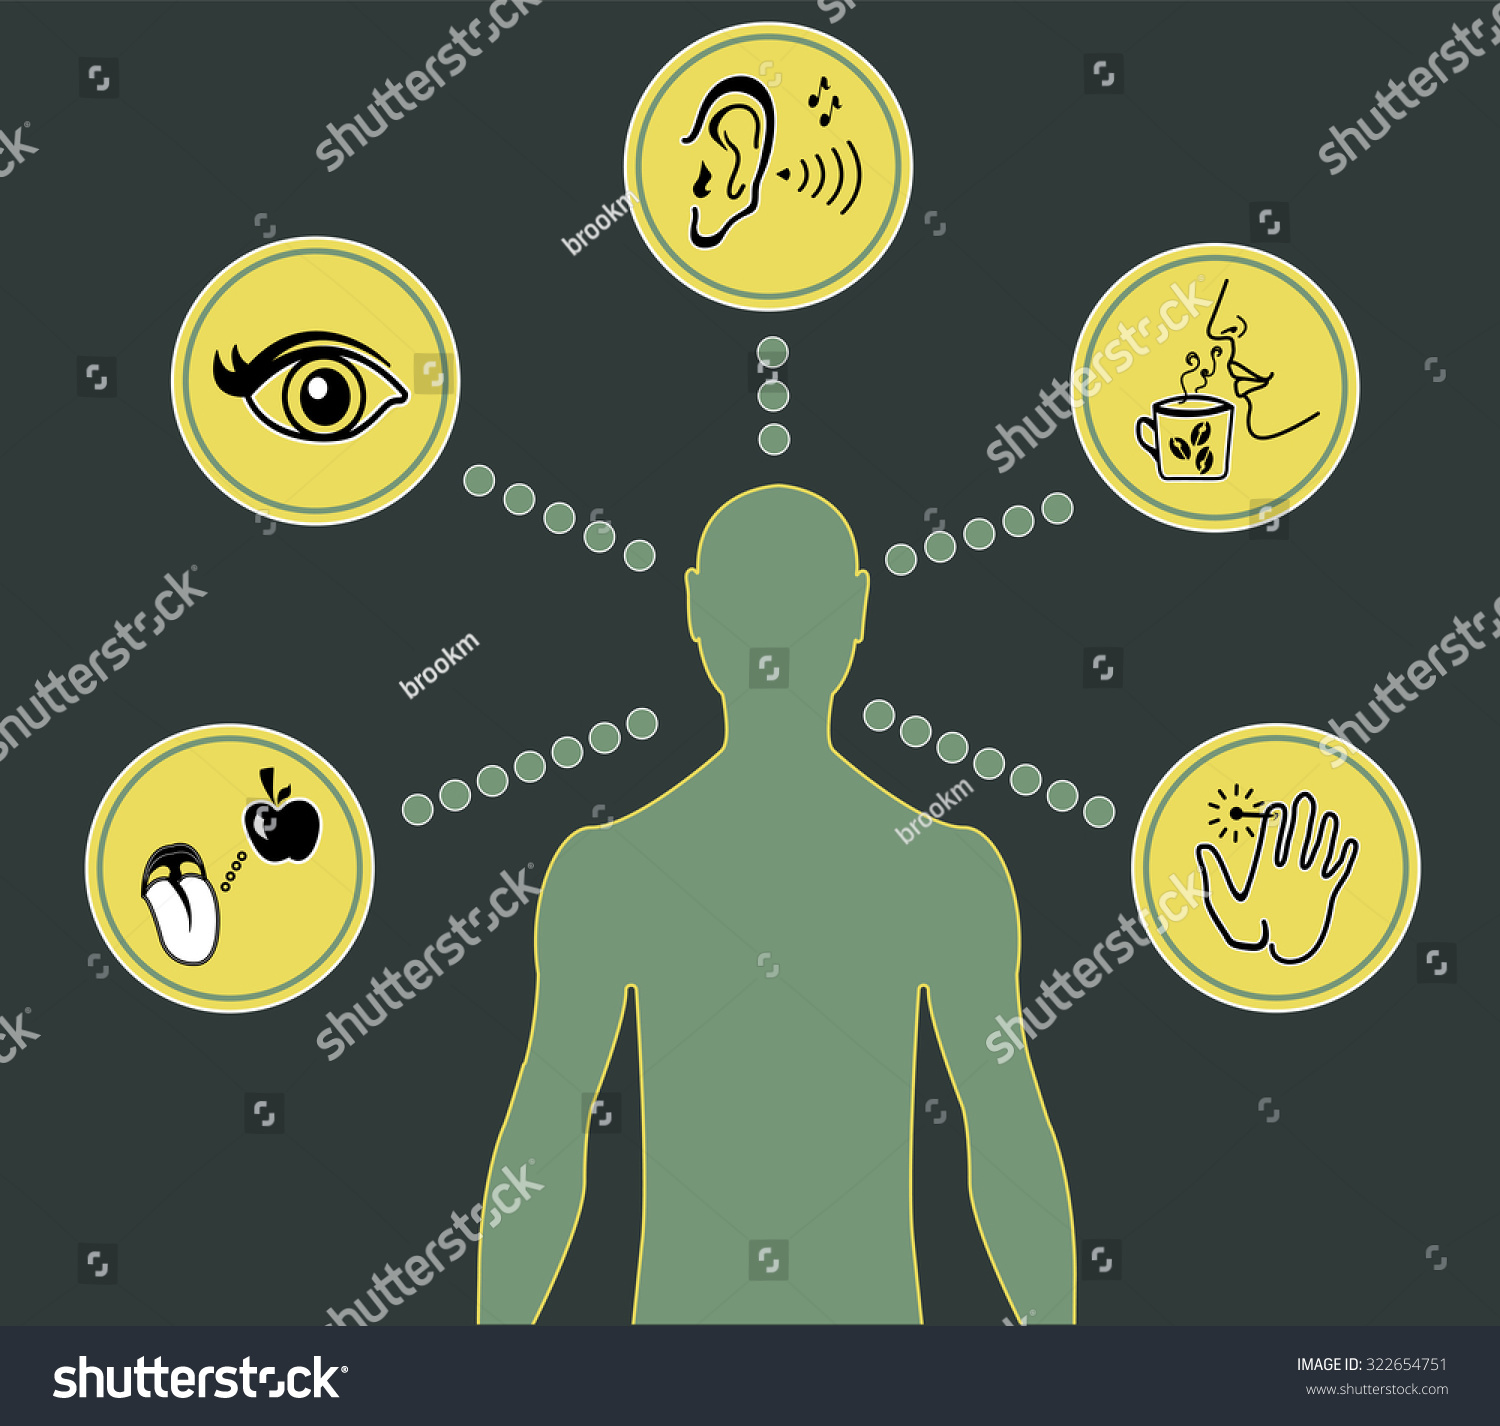 five senses diagram australian 3 pin plug wiring icon set of human stock vector